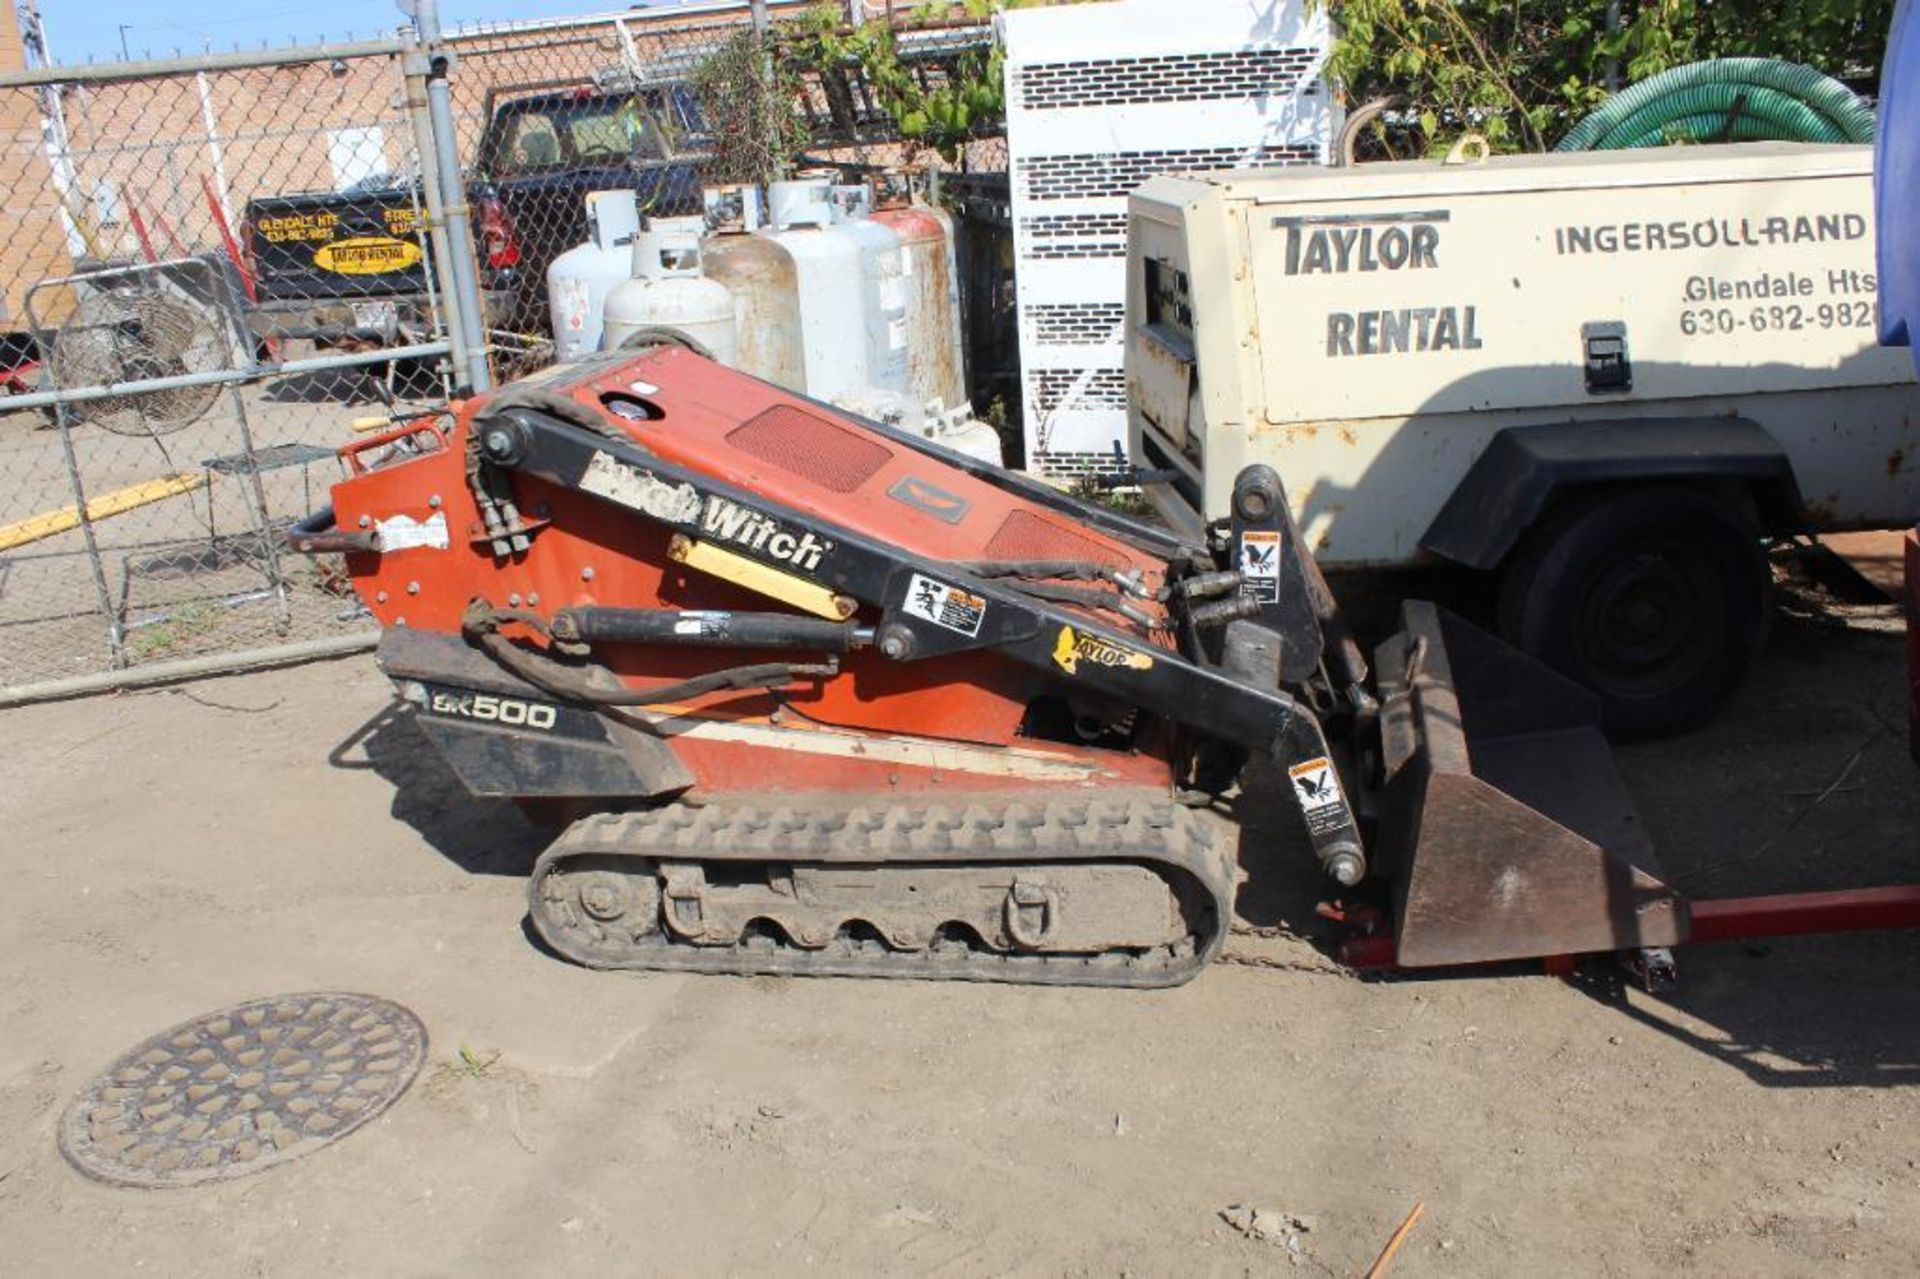 Ditch Witch Mini Skid Steer Model SK 500 with Loader Bucket and 5 Tooth Blade, S/N 1Y5485, 750 Indic - Image 2 of 4